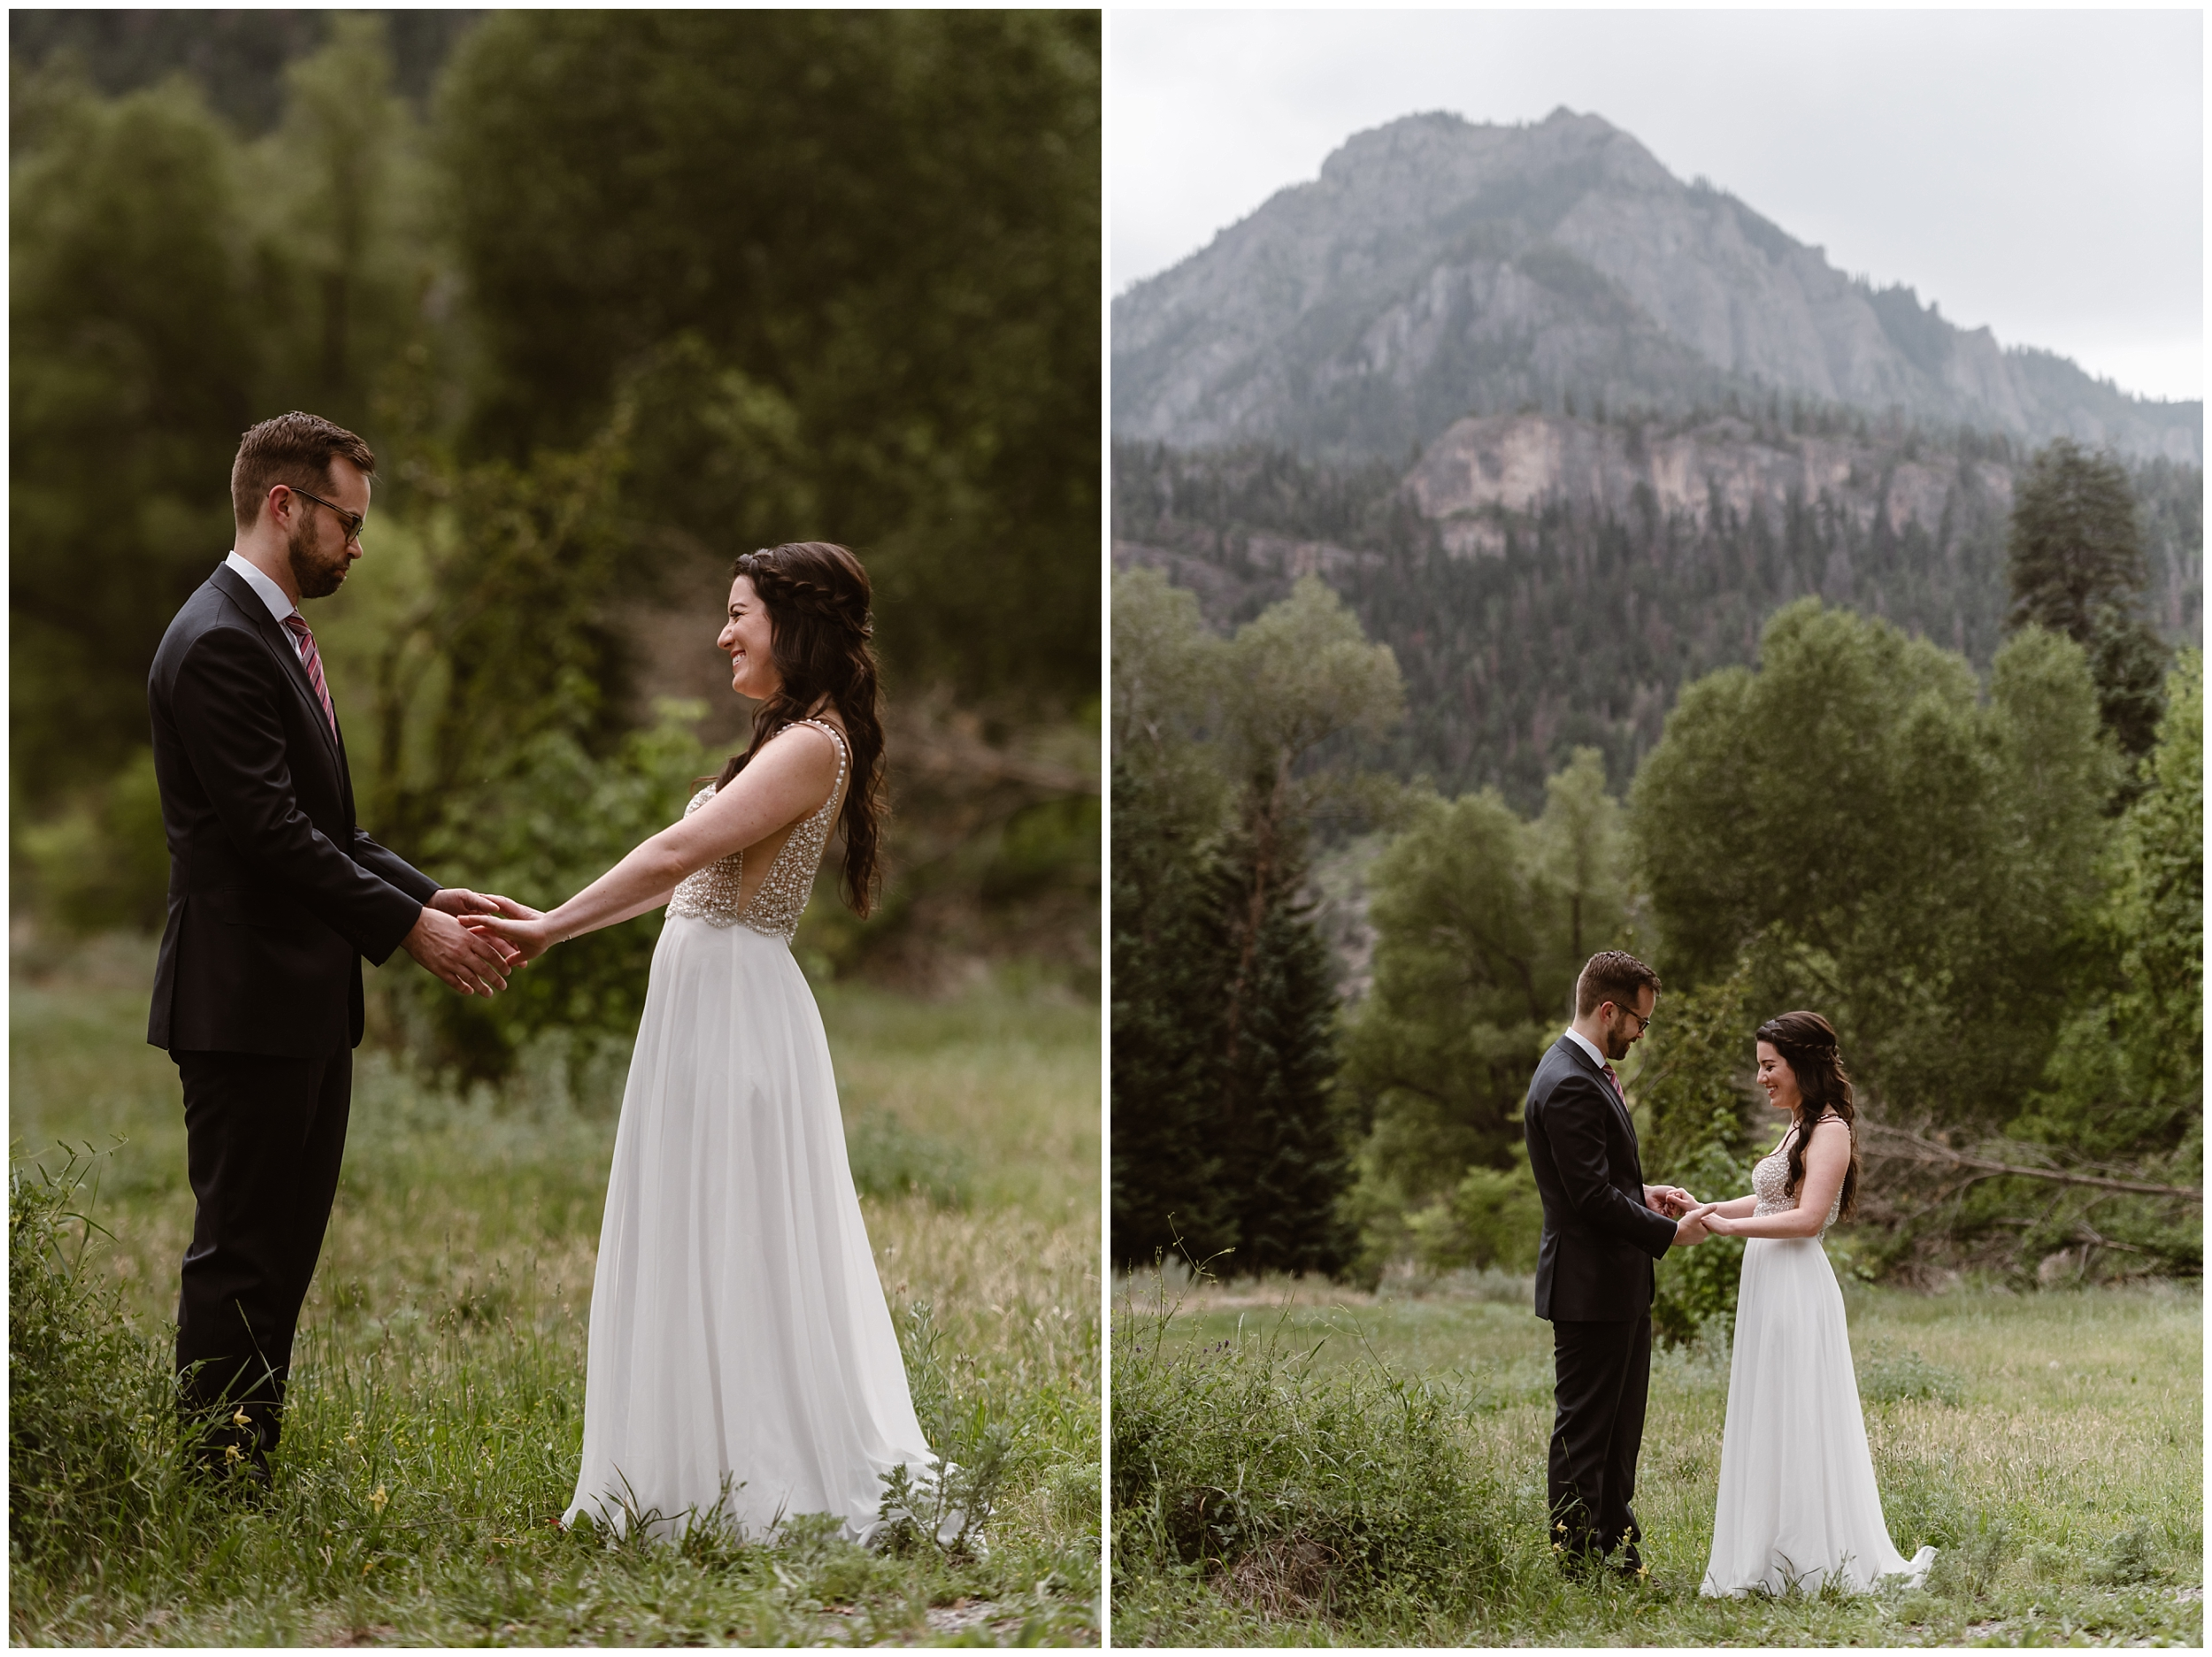 These side-by-side adventure elopement pictures show Katie and Logan during their first look, an exciting part of any elopement ceremony. The grand mountains in the background, as well as the bright, beautiful green trees growing everywhere make Ouray, Colorado one of the best elopement ideas.